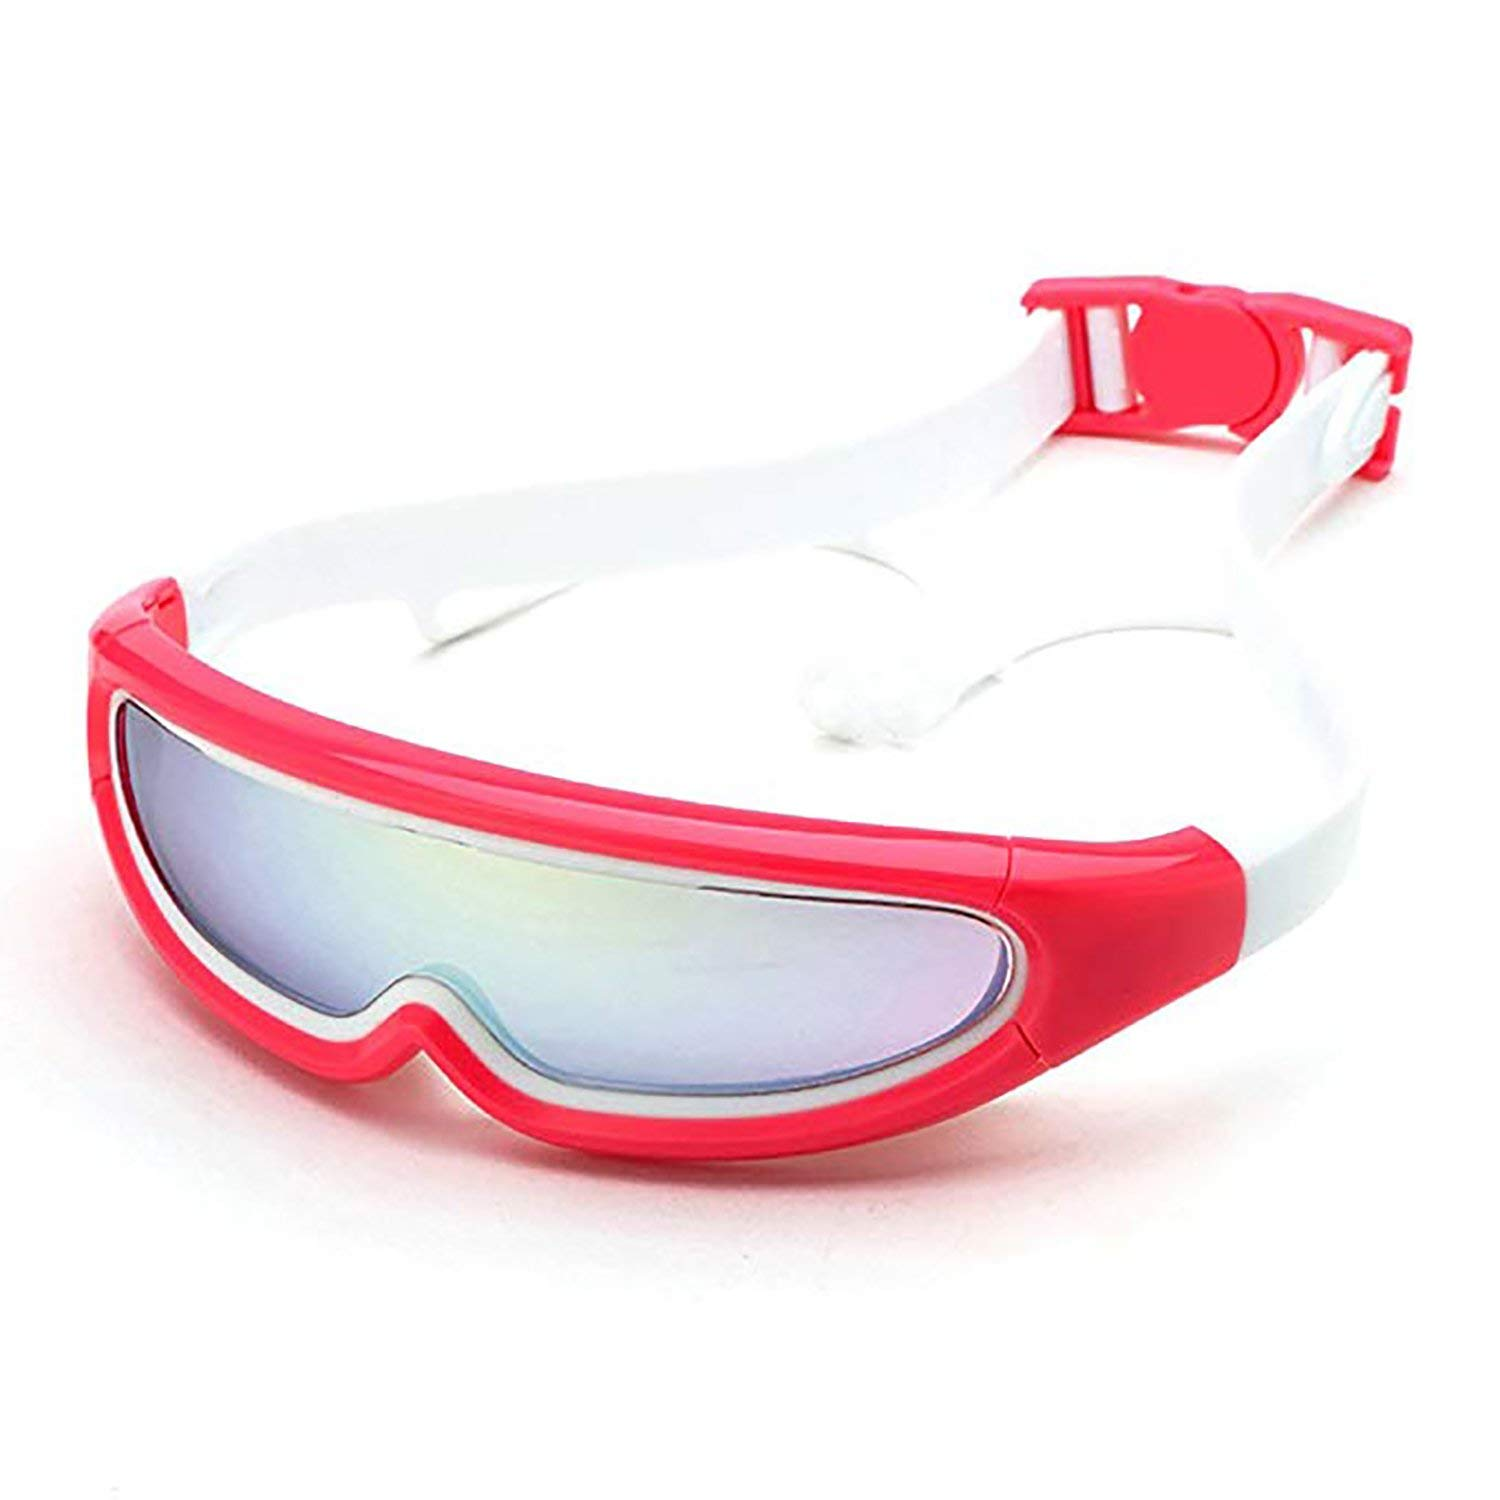 a9b51d7bd72d Get Quotations · Kids Swim Goggles( 3-15 years old)